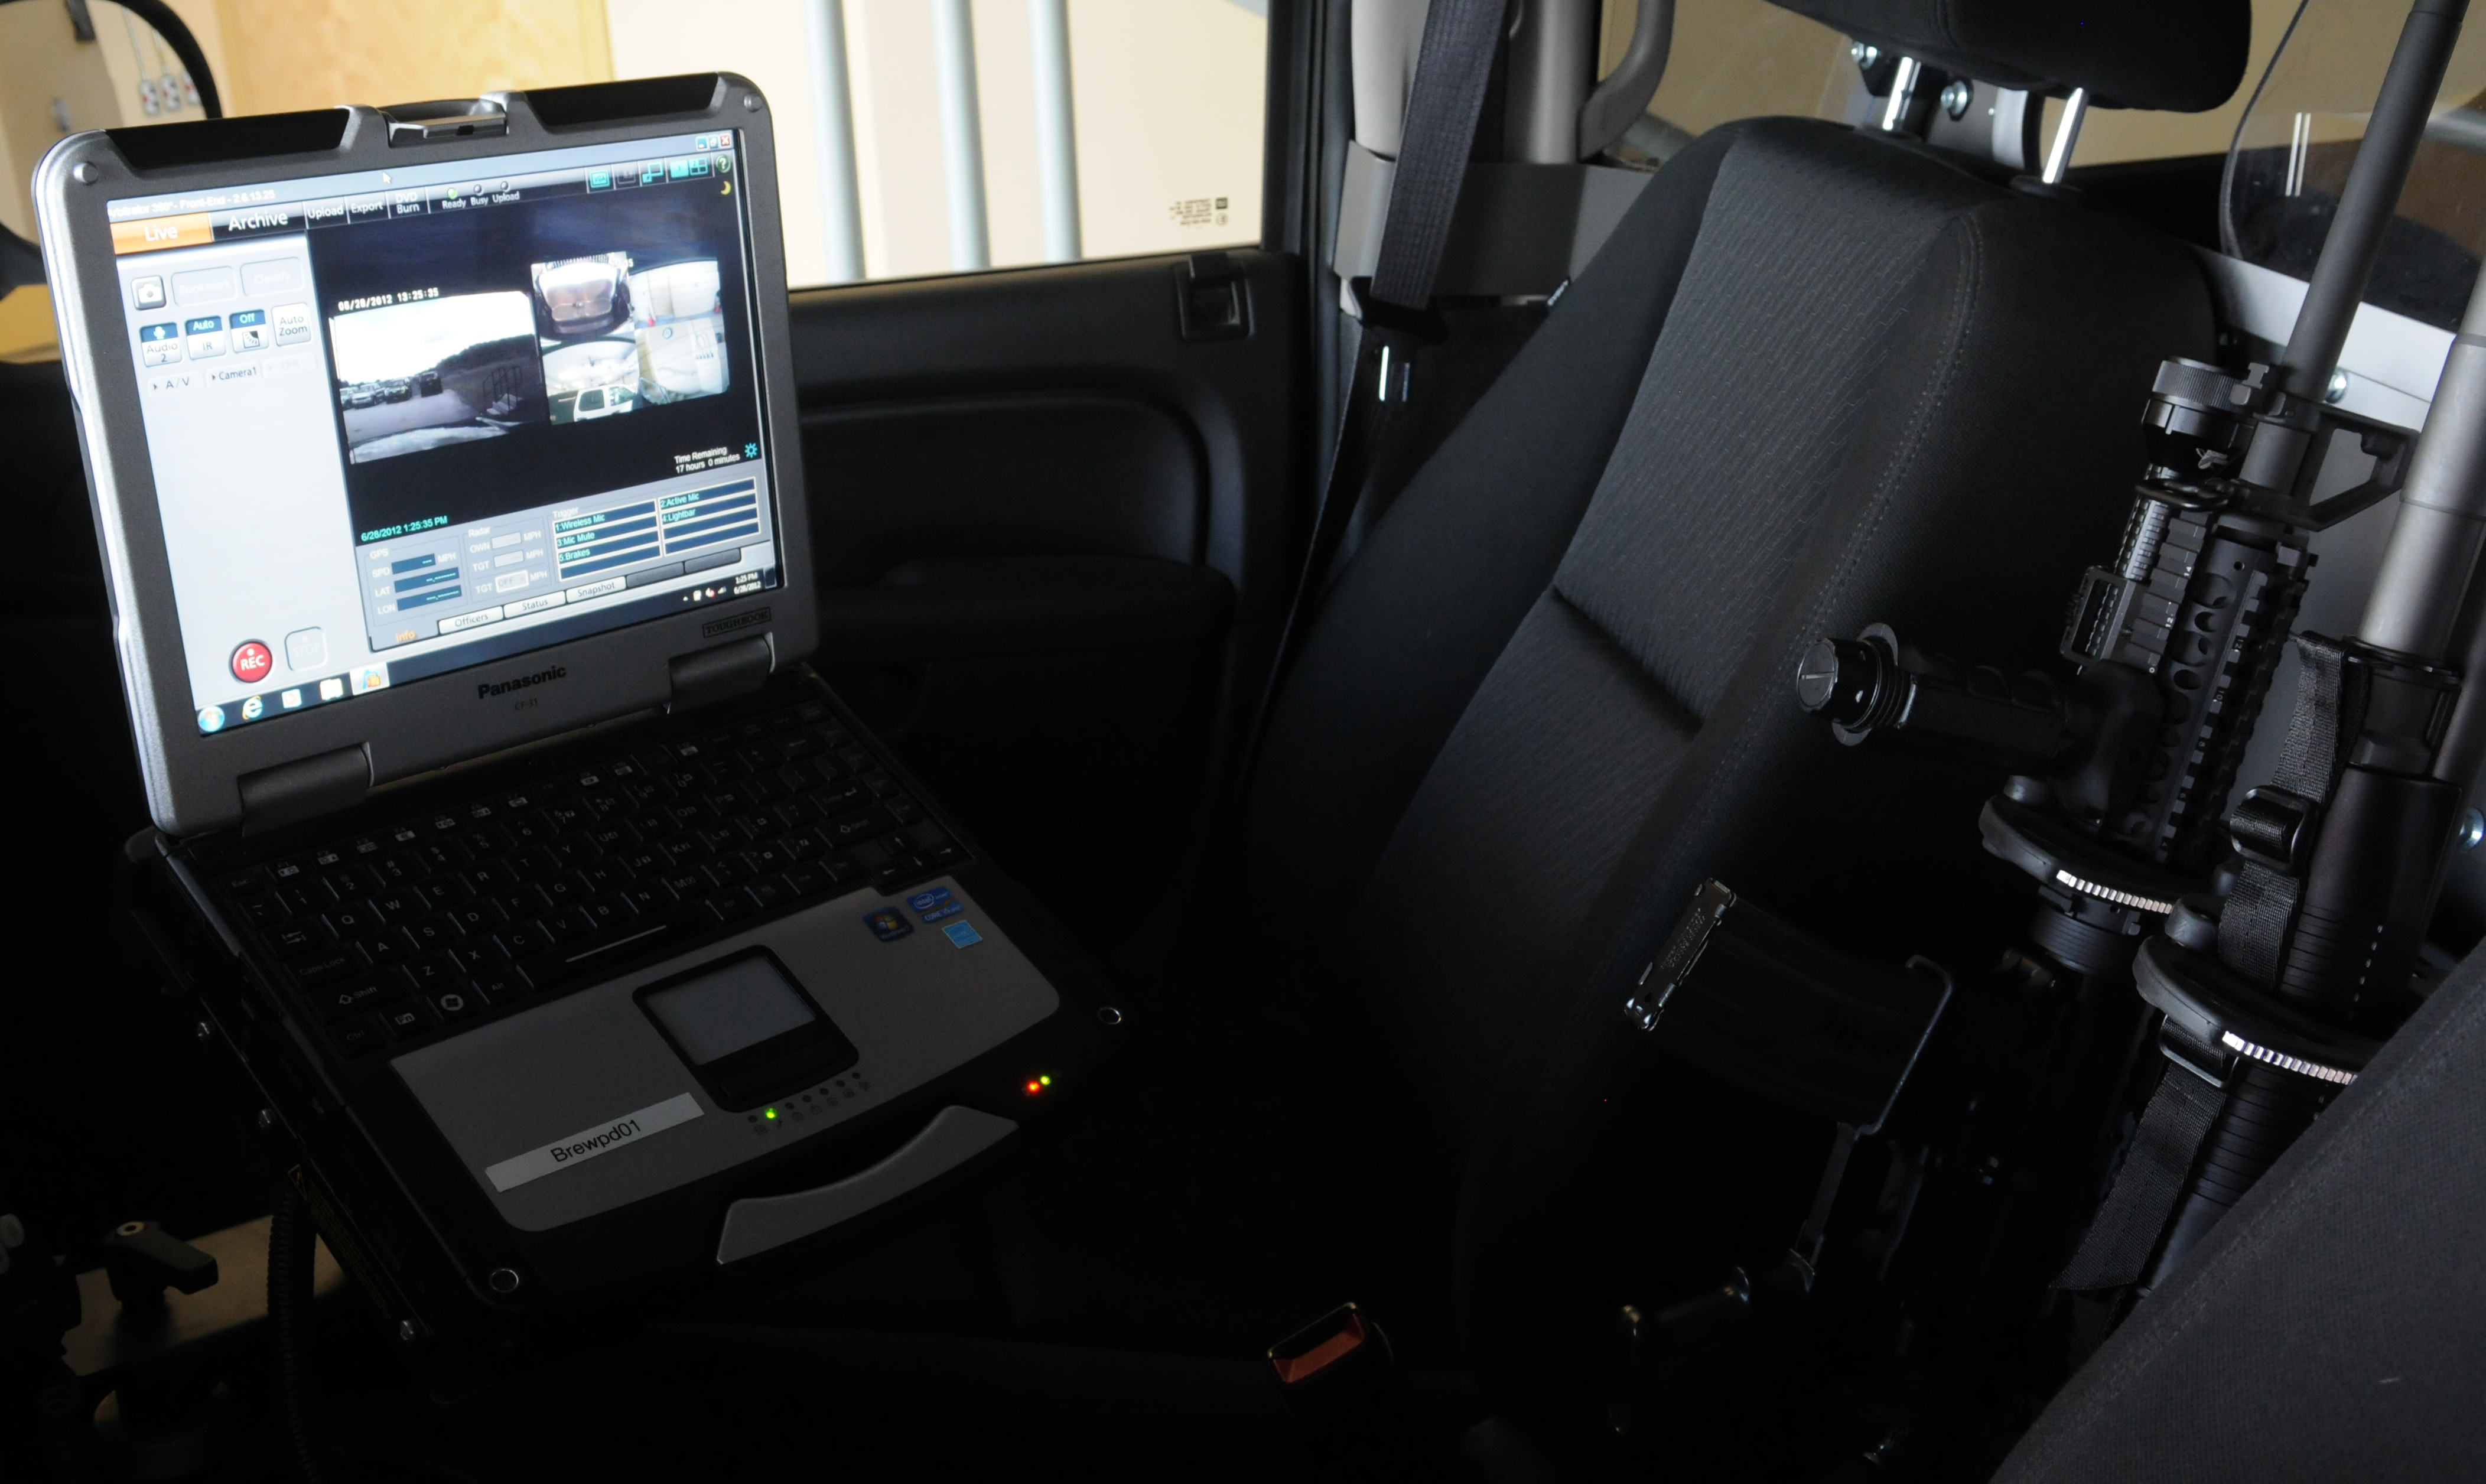 Brewer police now have a state-of-the-art video system for their patrol cars. The system automatically uploads the video to a server at the station when the officer arrives at the garage after a shift.